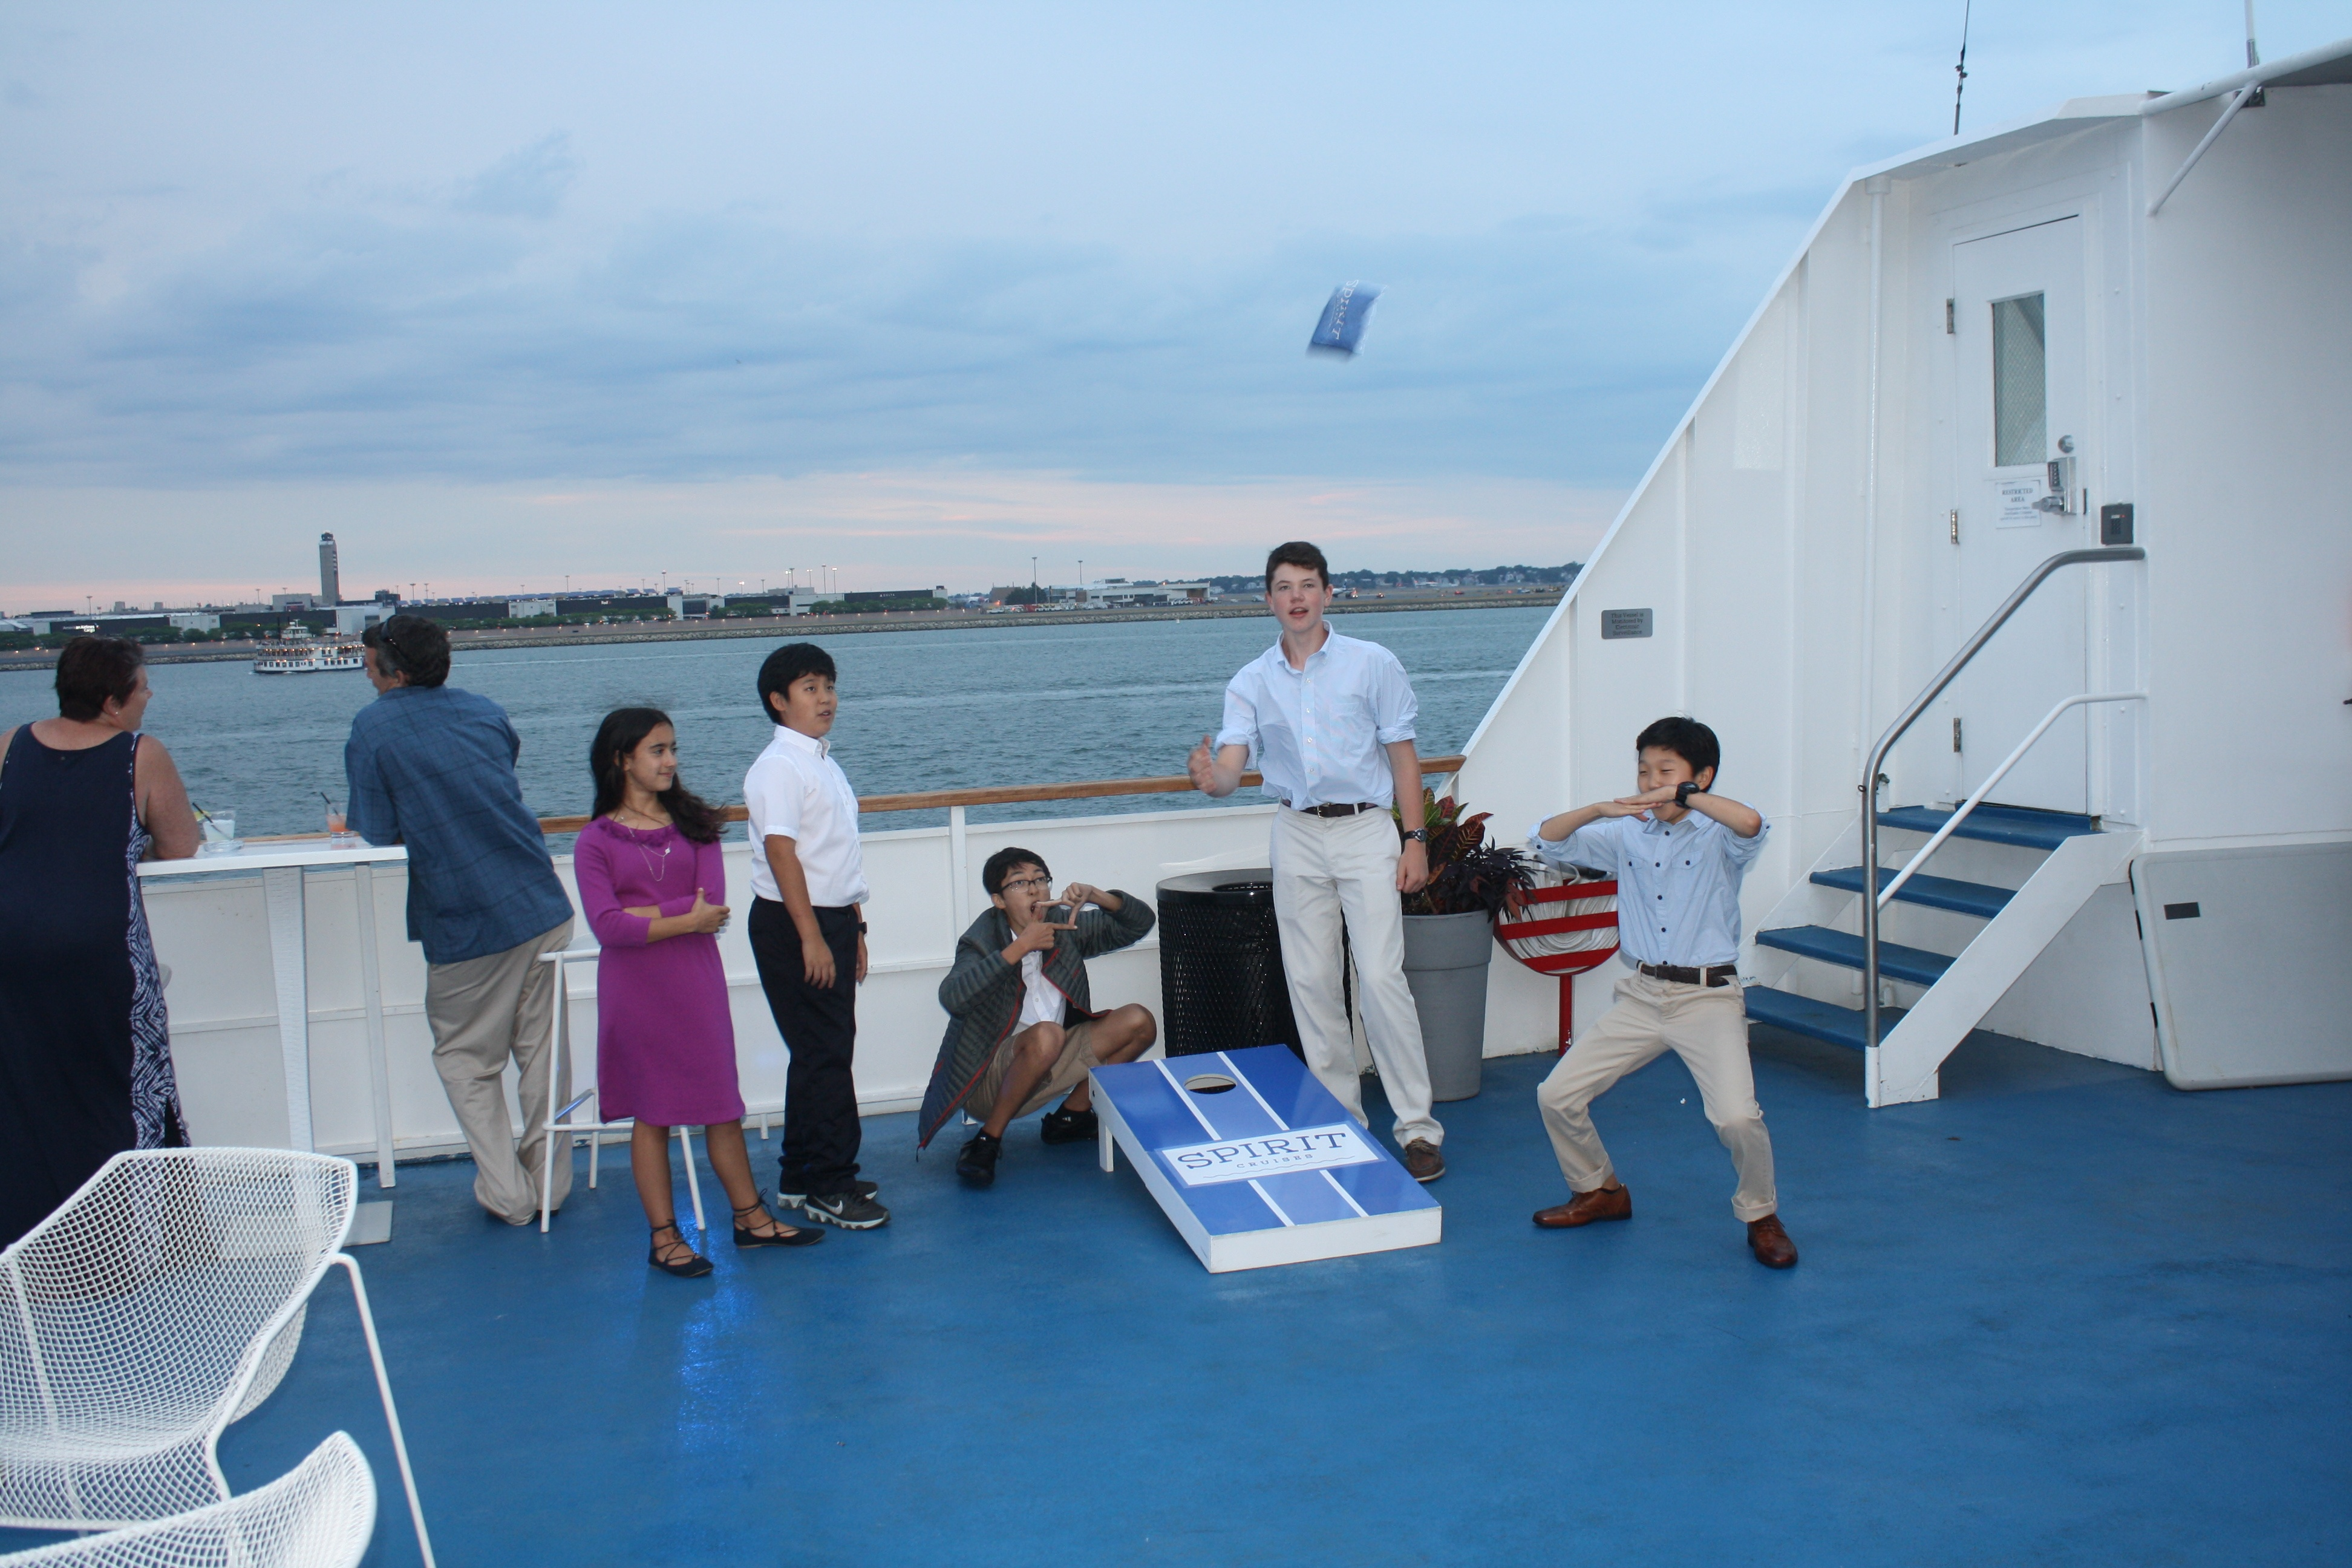 Seventh and Eighth toss bean bags on our Boston Harbor cruise